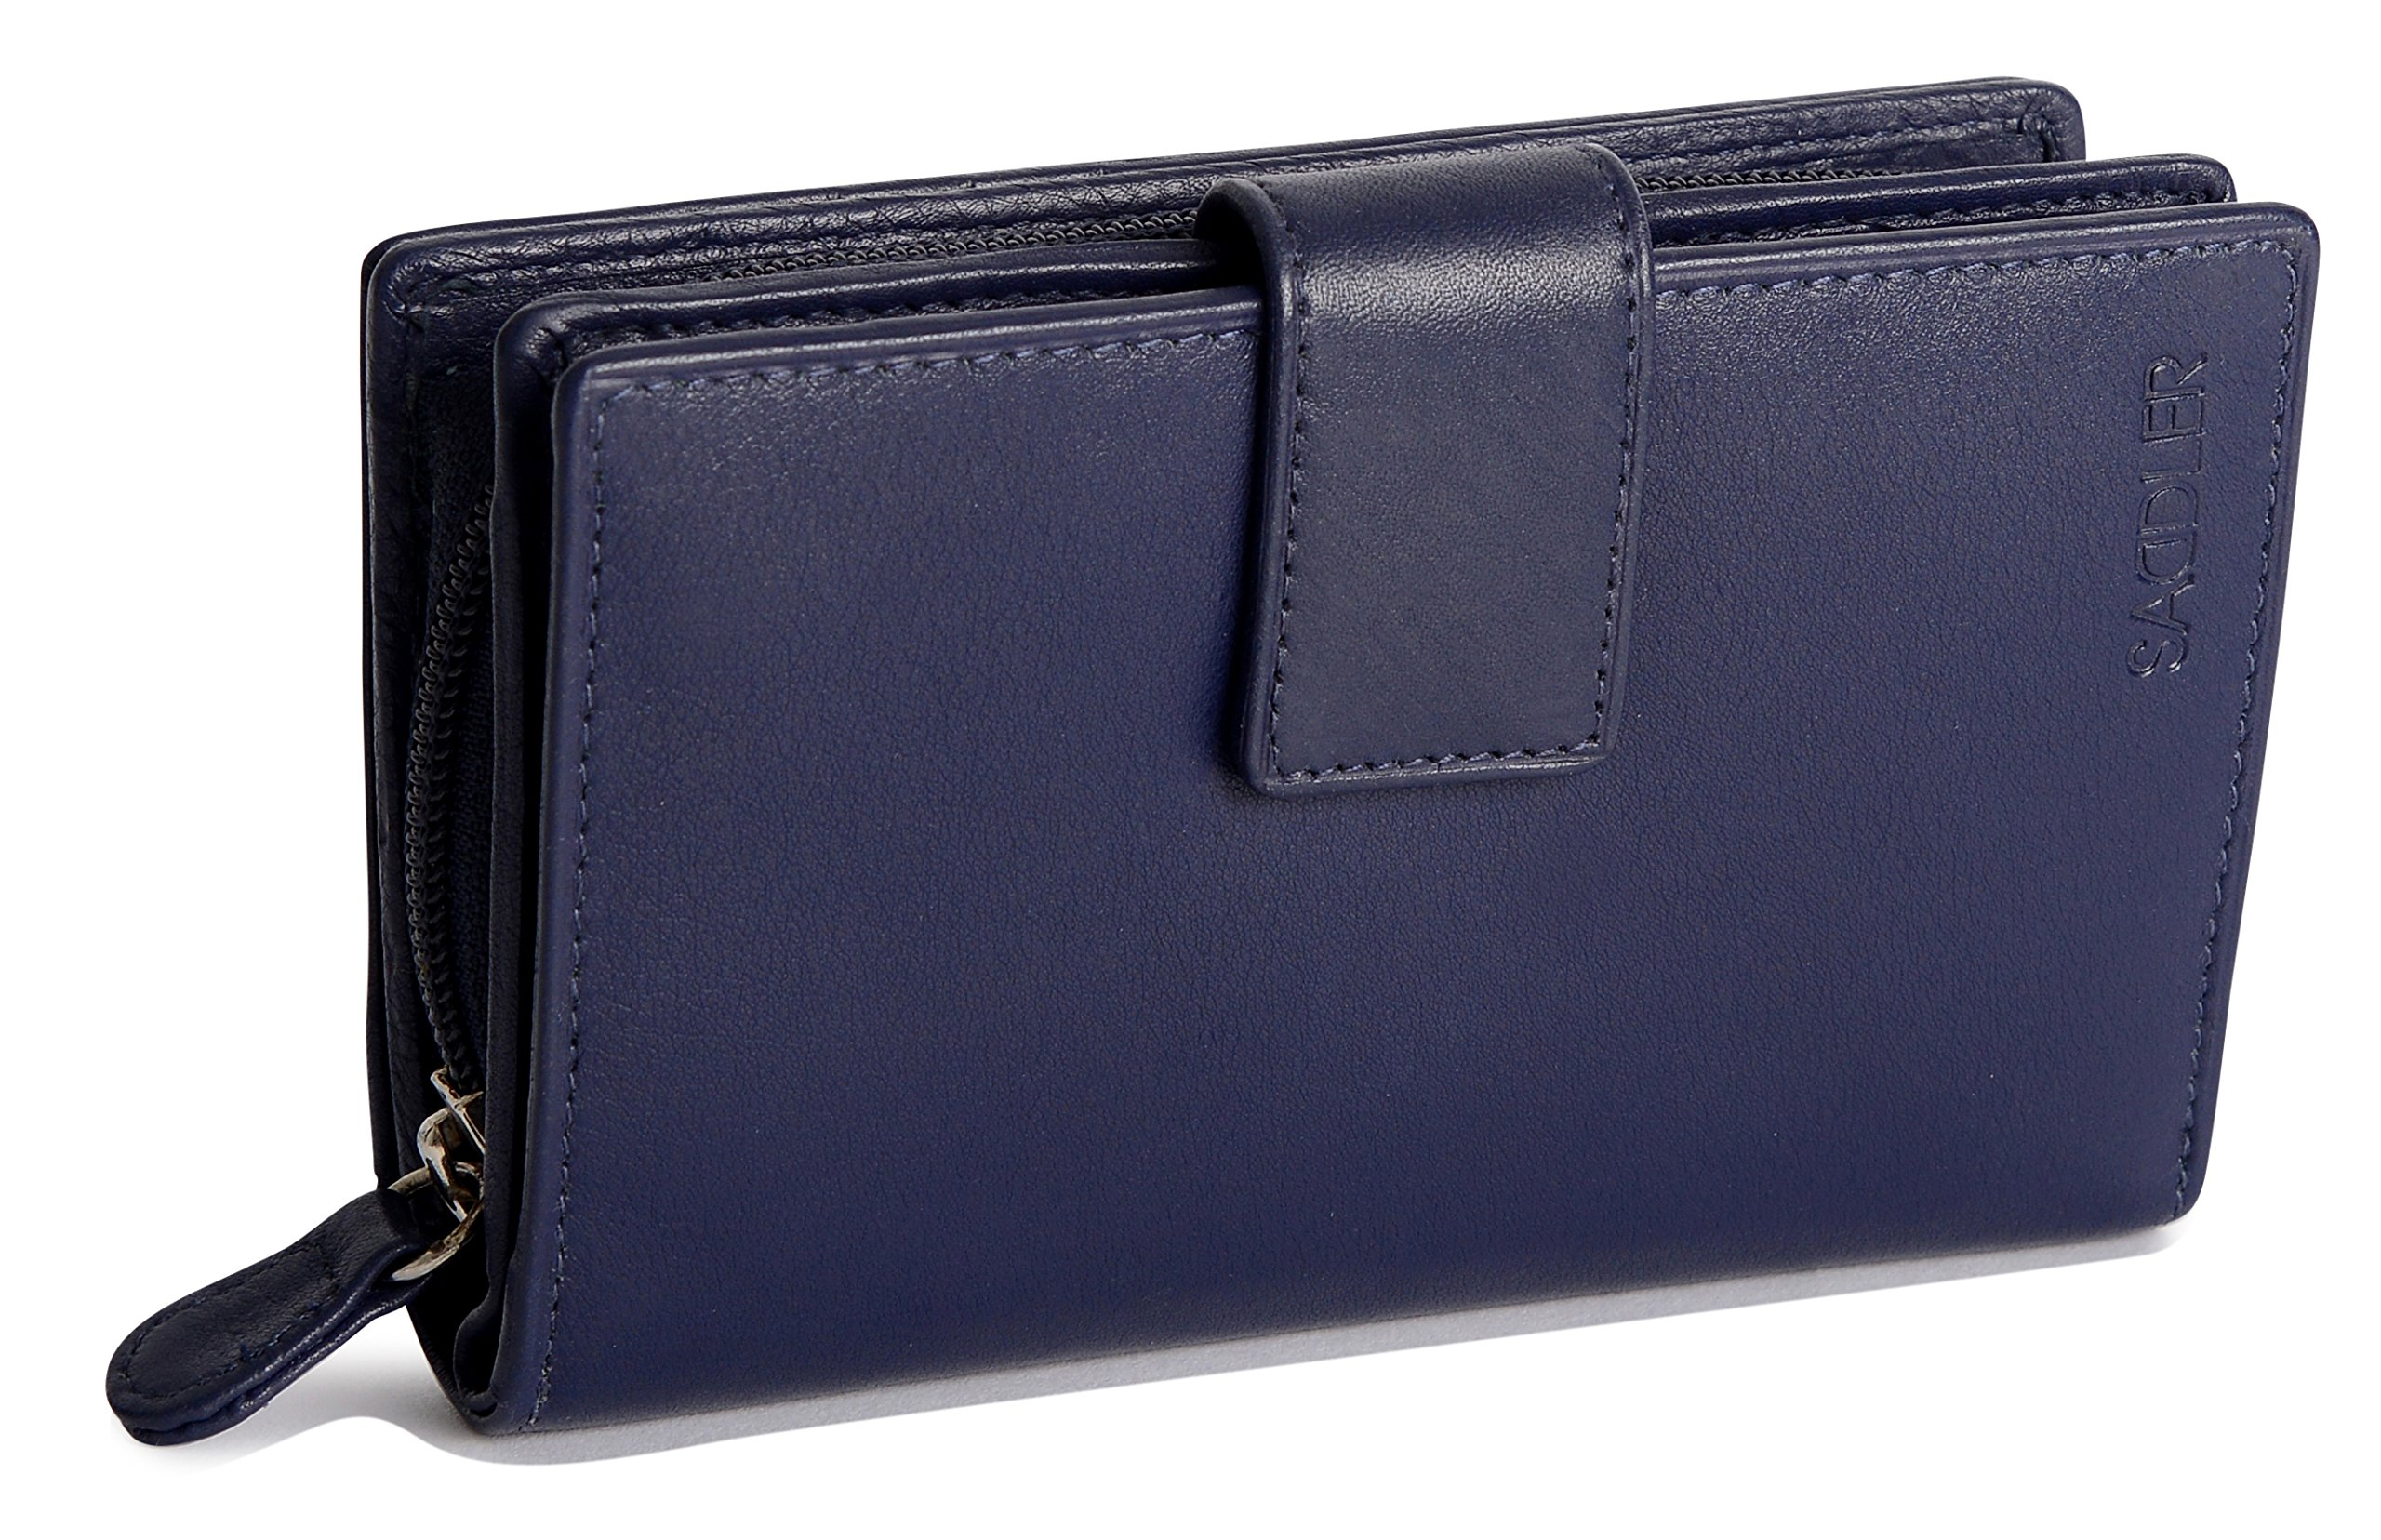 SADDLER Womens Leather High Volume Womens Tab Wallet Zipper Purse - Peacoat Blue by Saddler (Image #1)